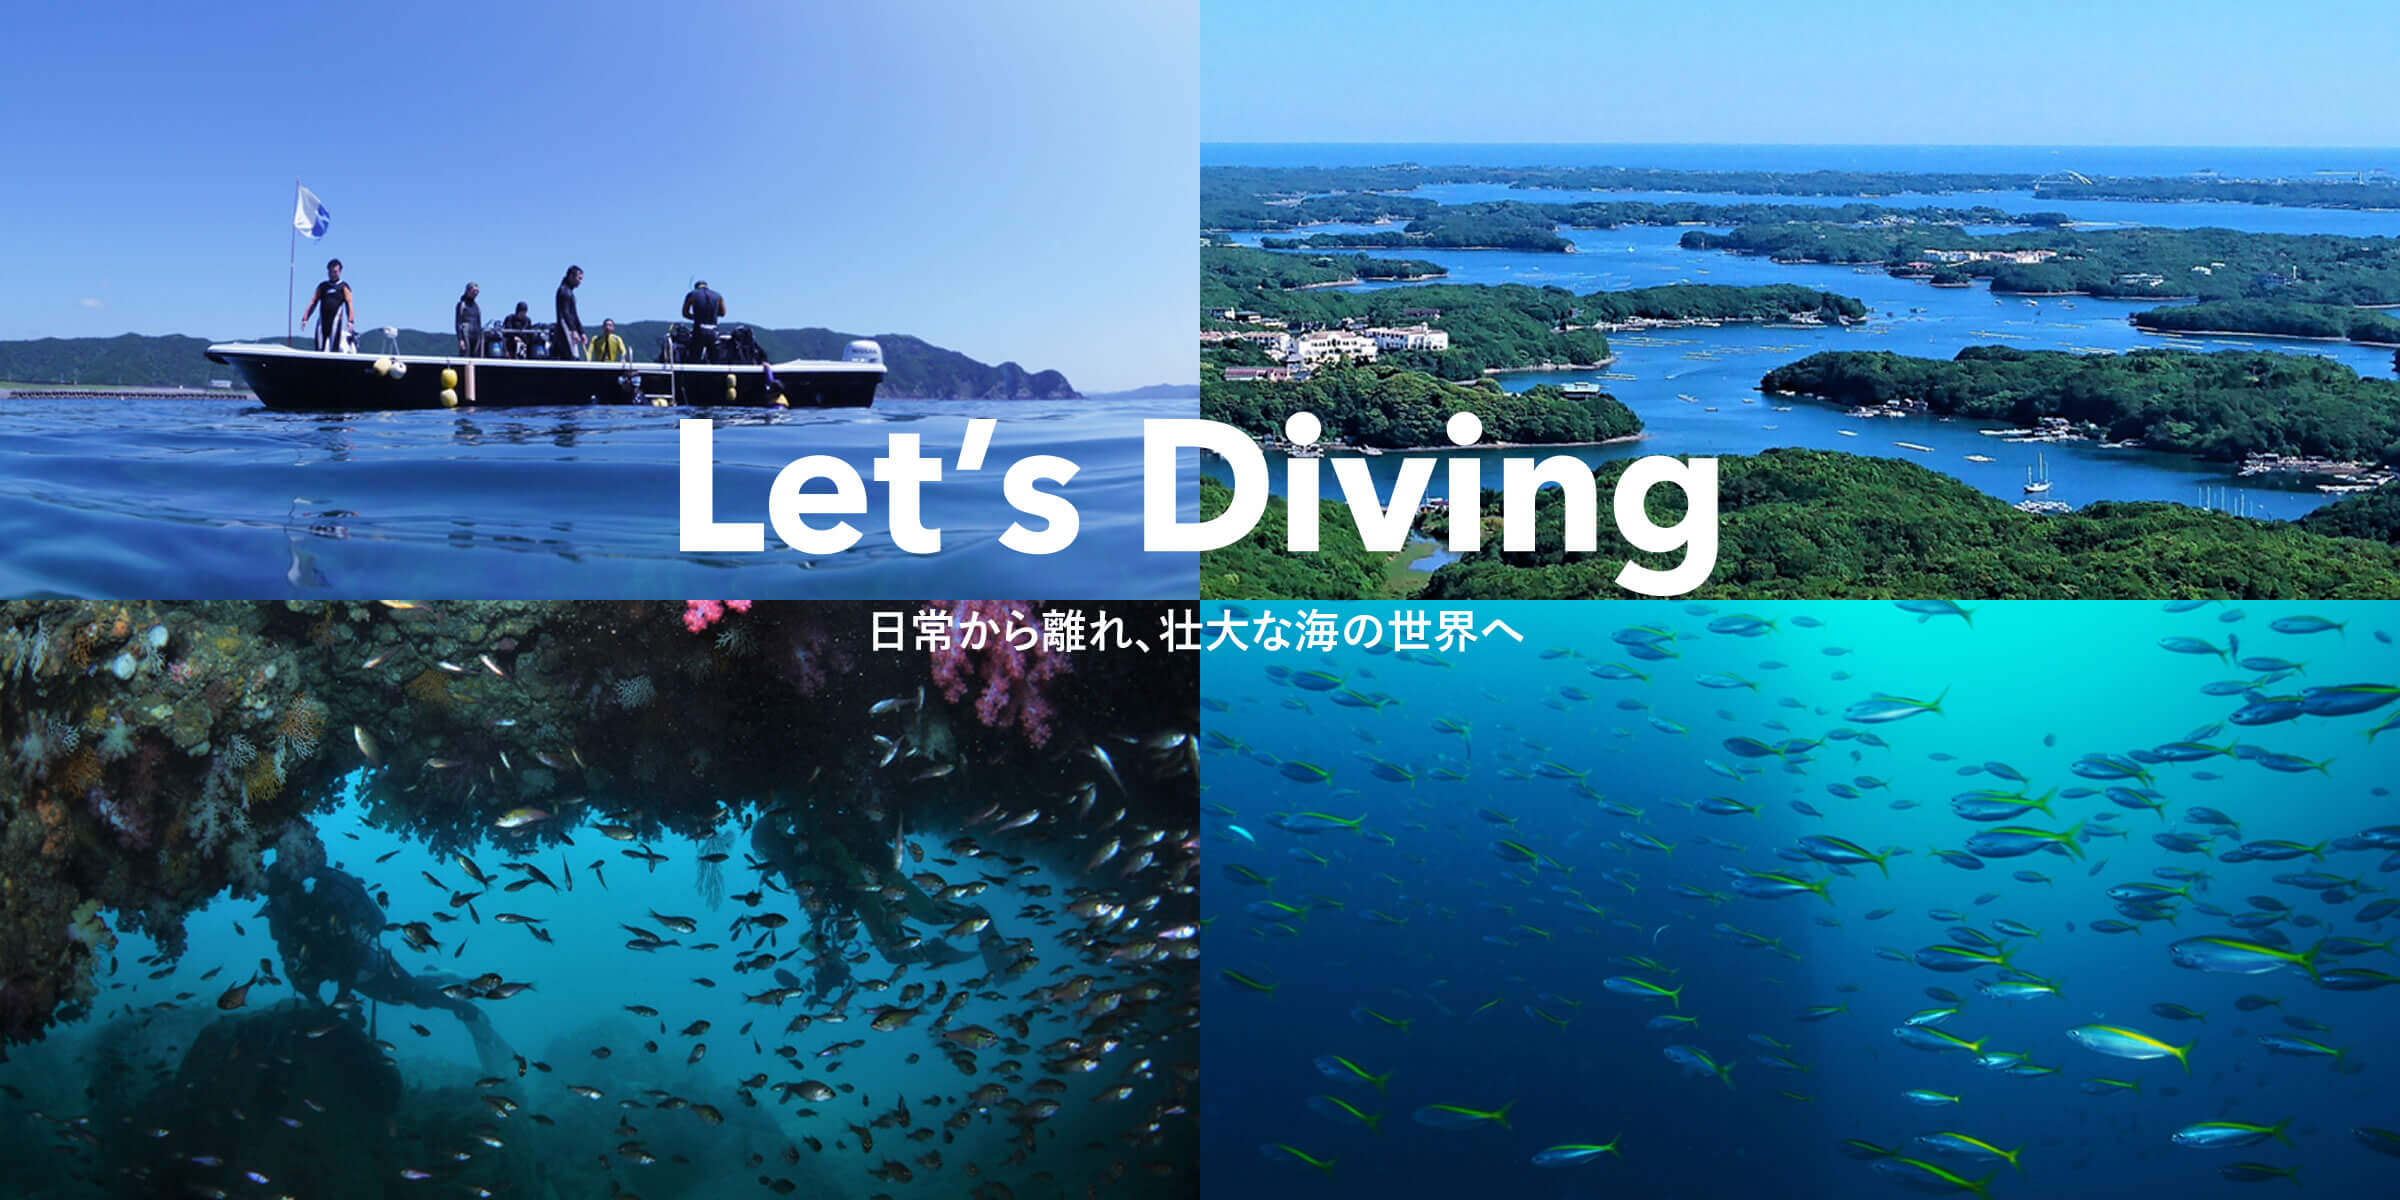 Let's Diving